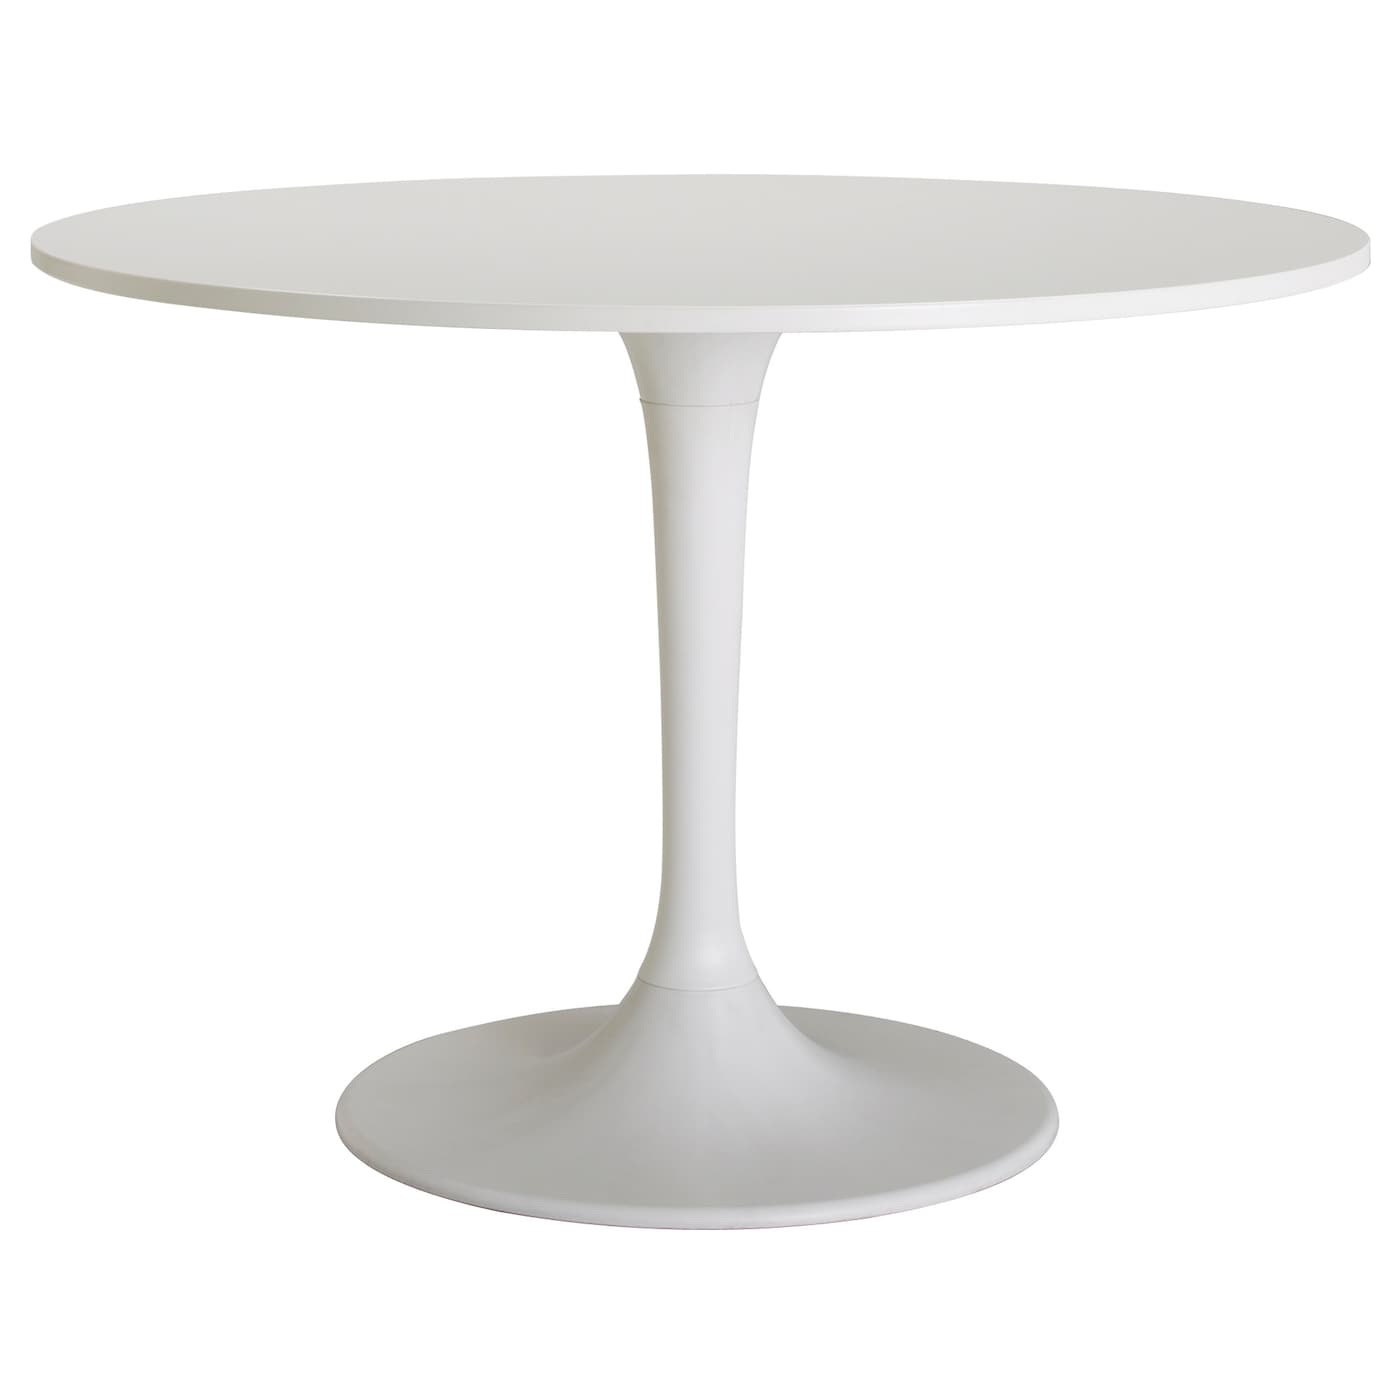 docksta table white  cm  ikea - ikea docksta table a round table with soft edges gives a relaxedimpression in